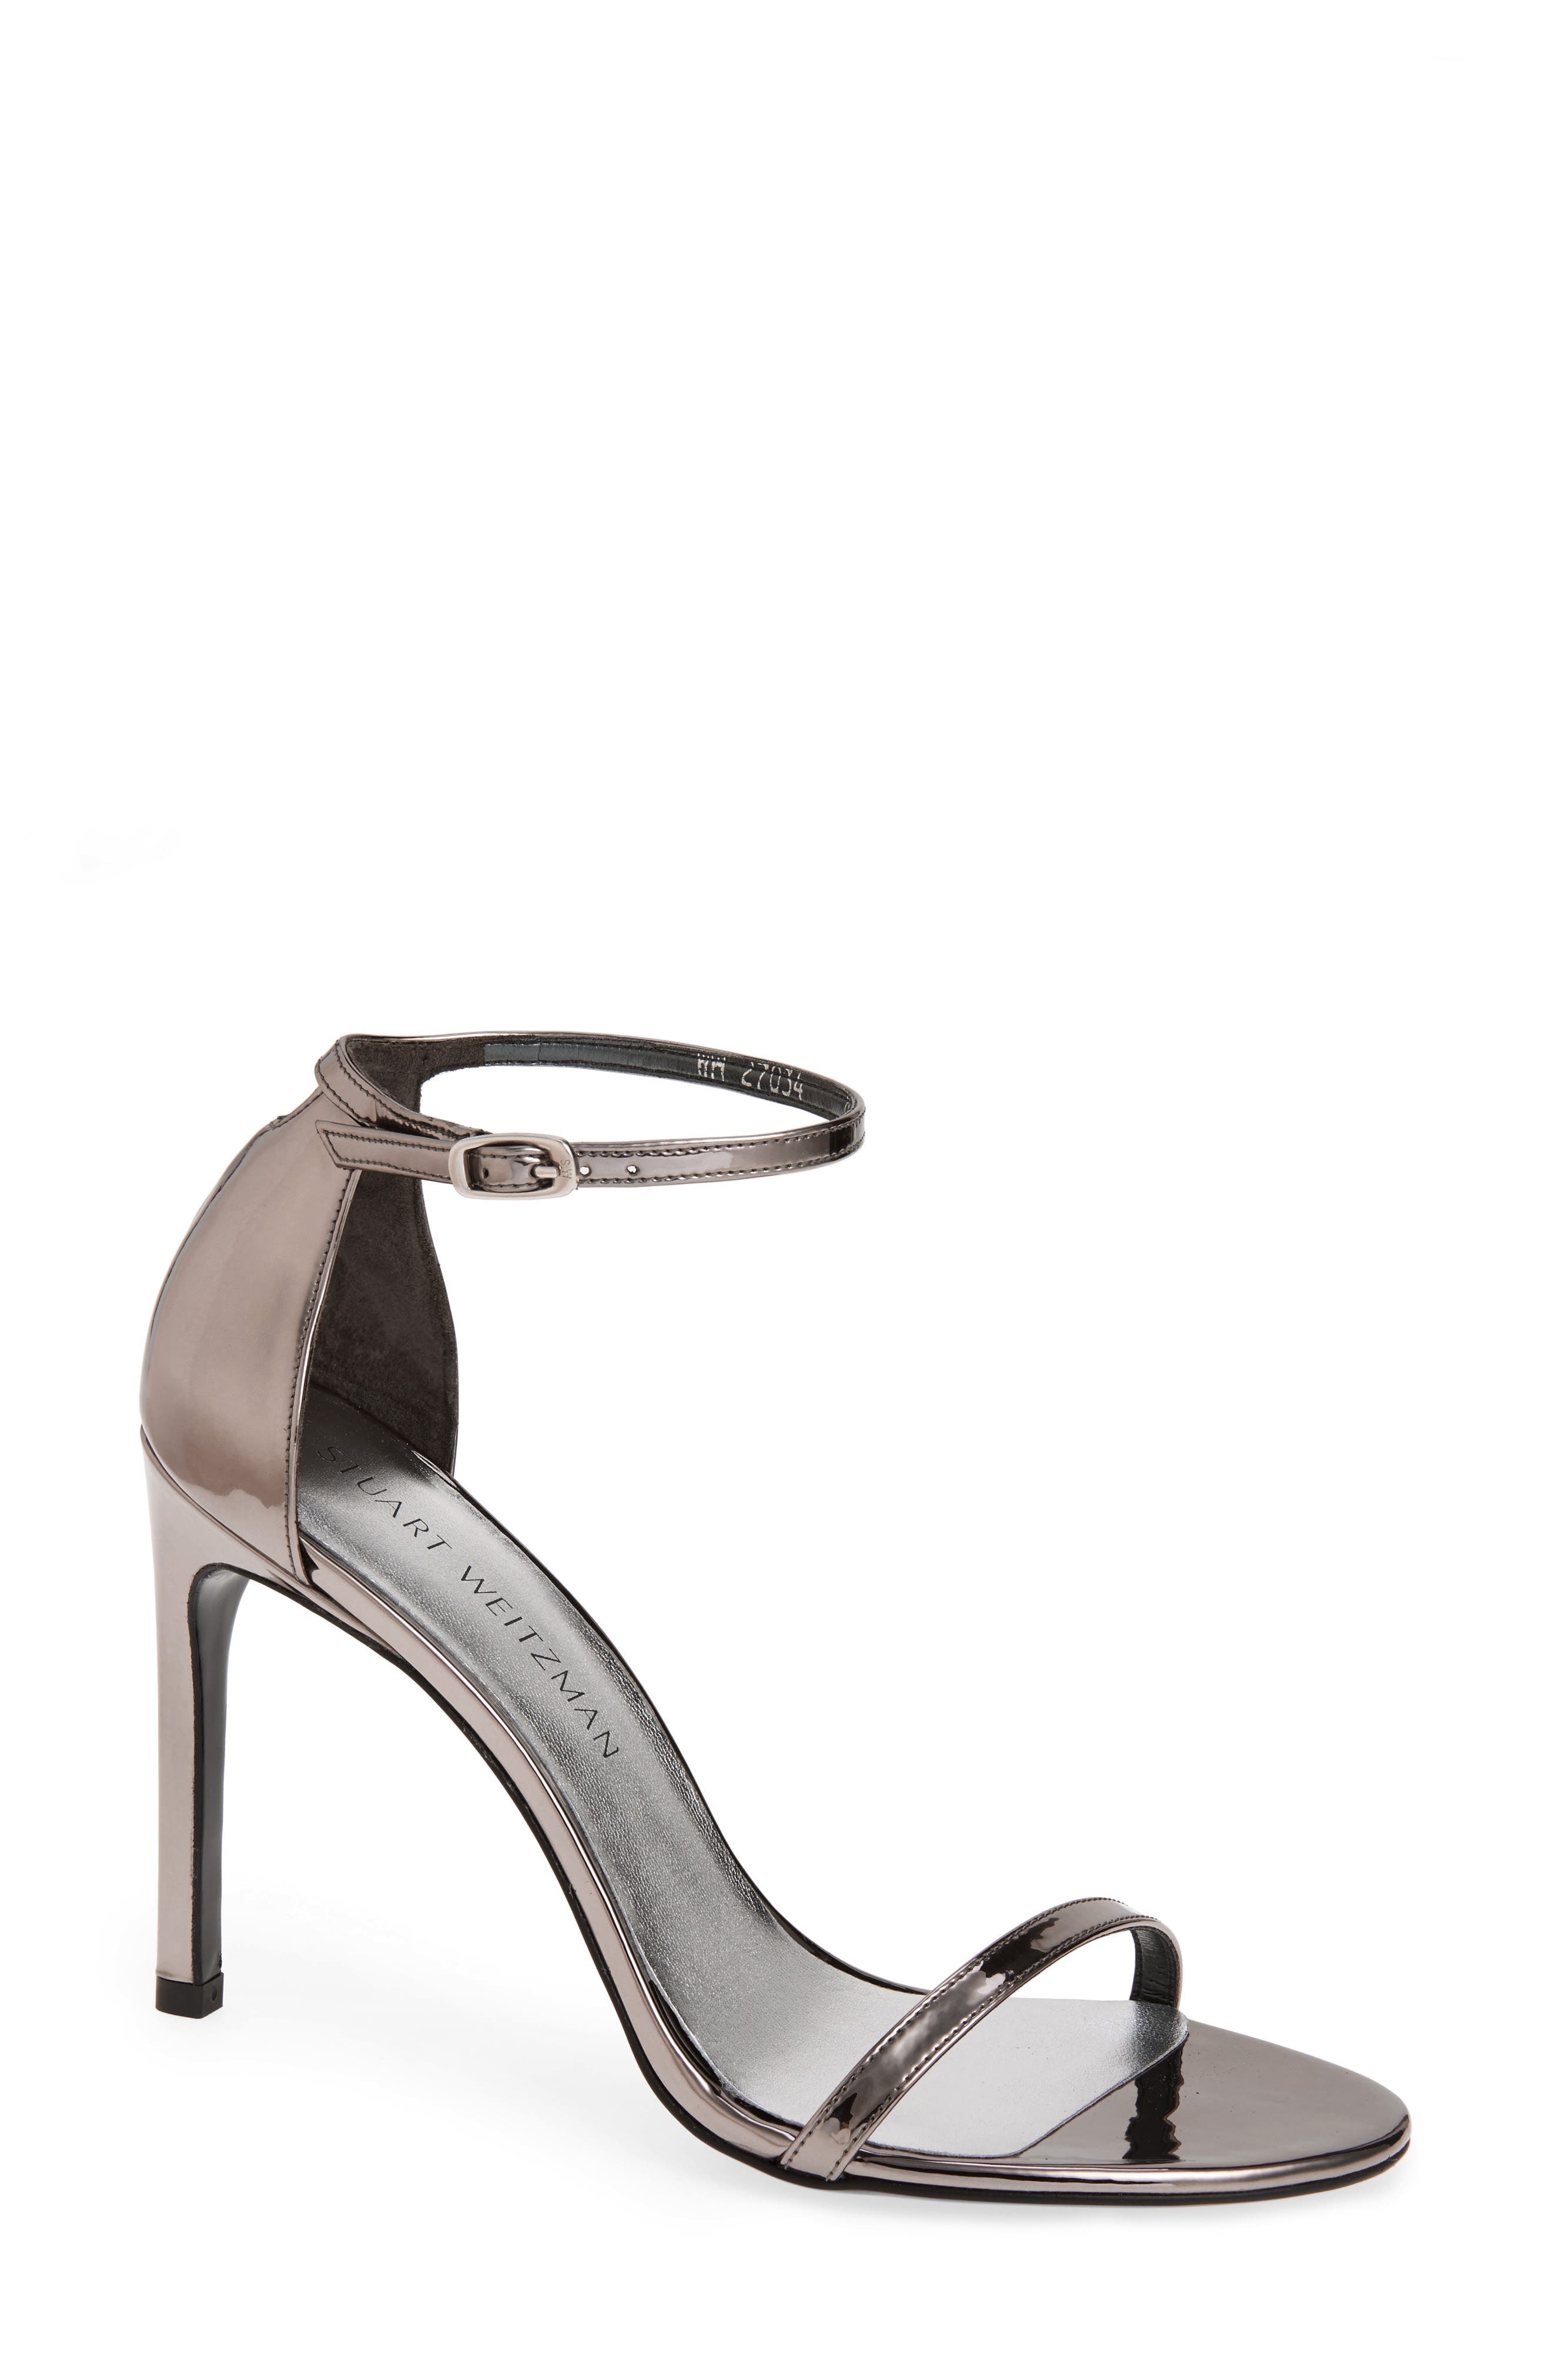 Nudistsong Ankle Strap Sandal,                             Main thumbnail 1, color,                             PEWTER GLASS